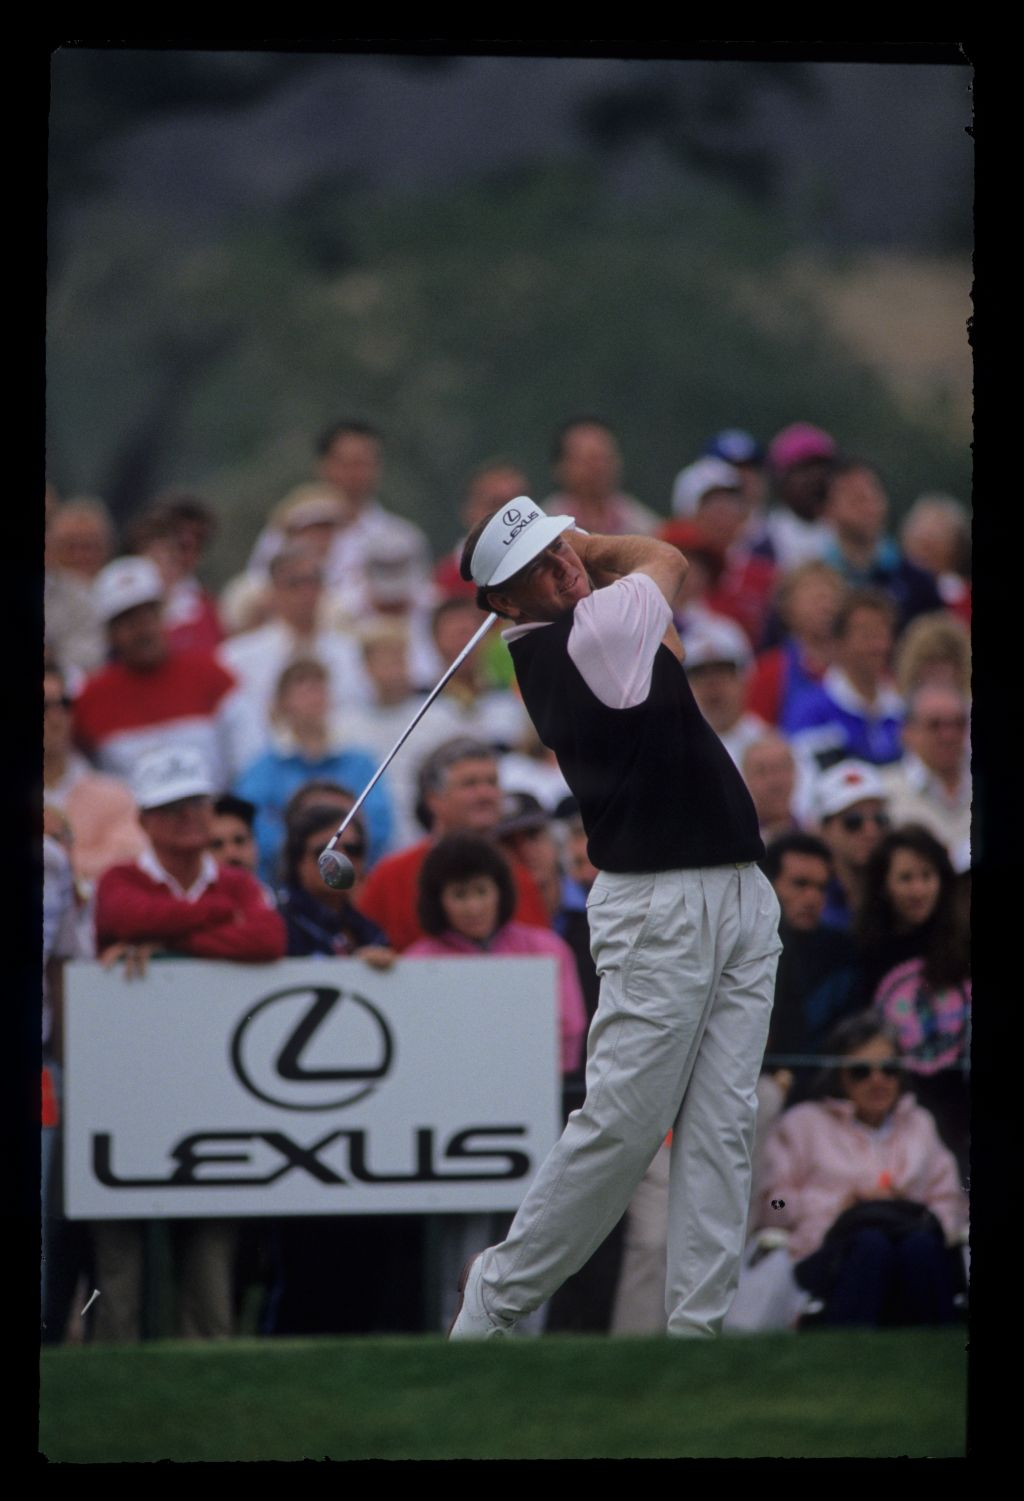 Mark O'Meara following through on the tee during the 1991 Shark Shootout